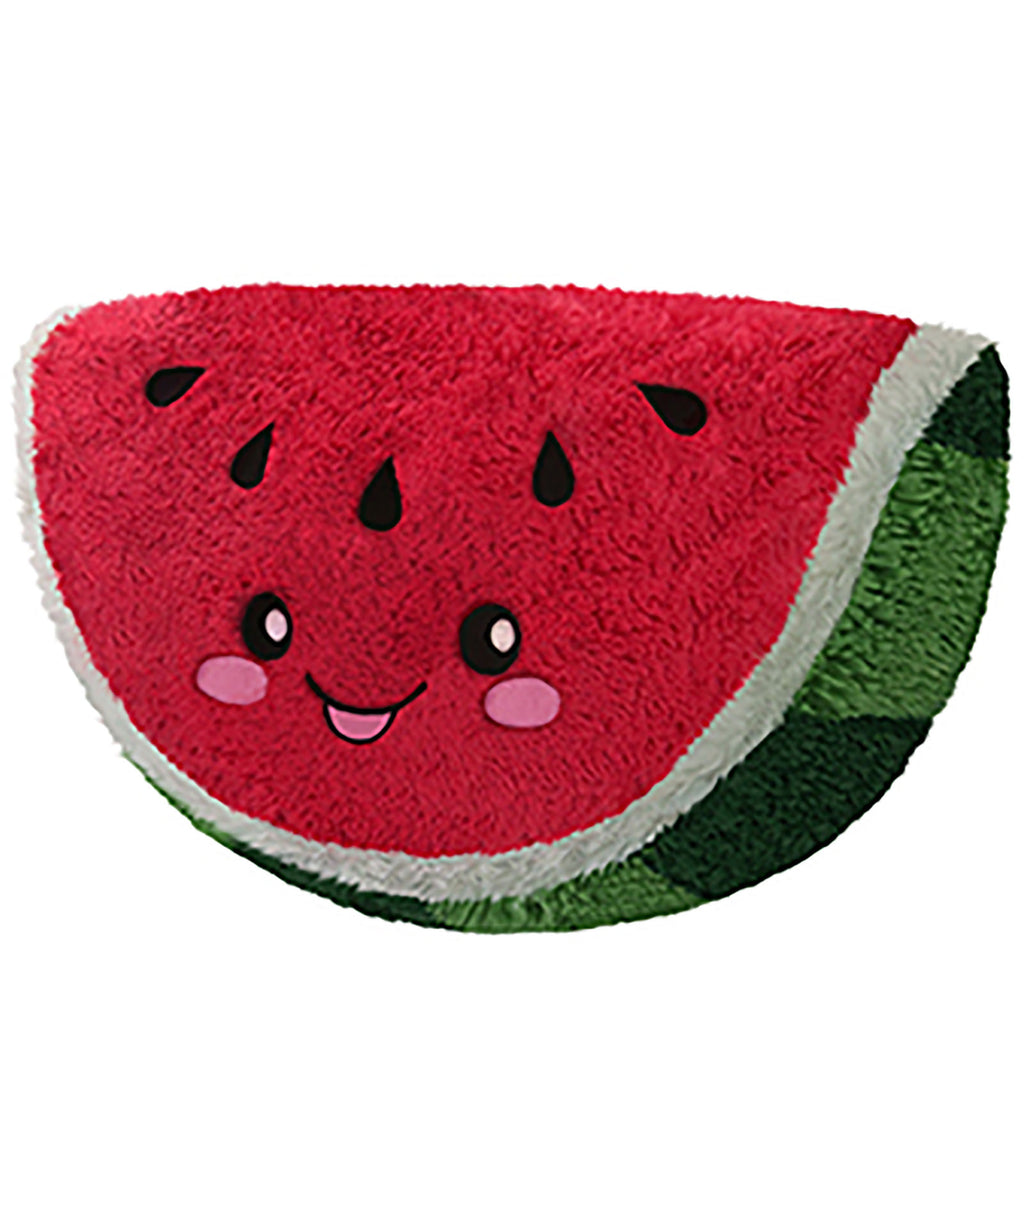 Squishable Watermelon - Frankie's on the Park